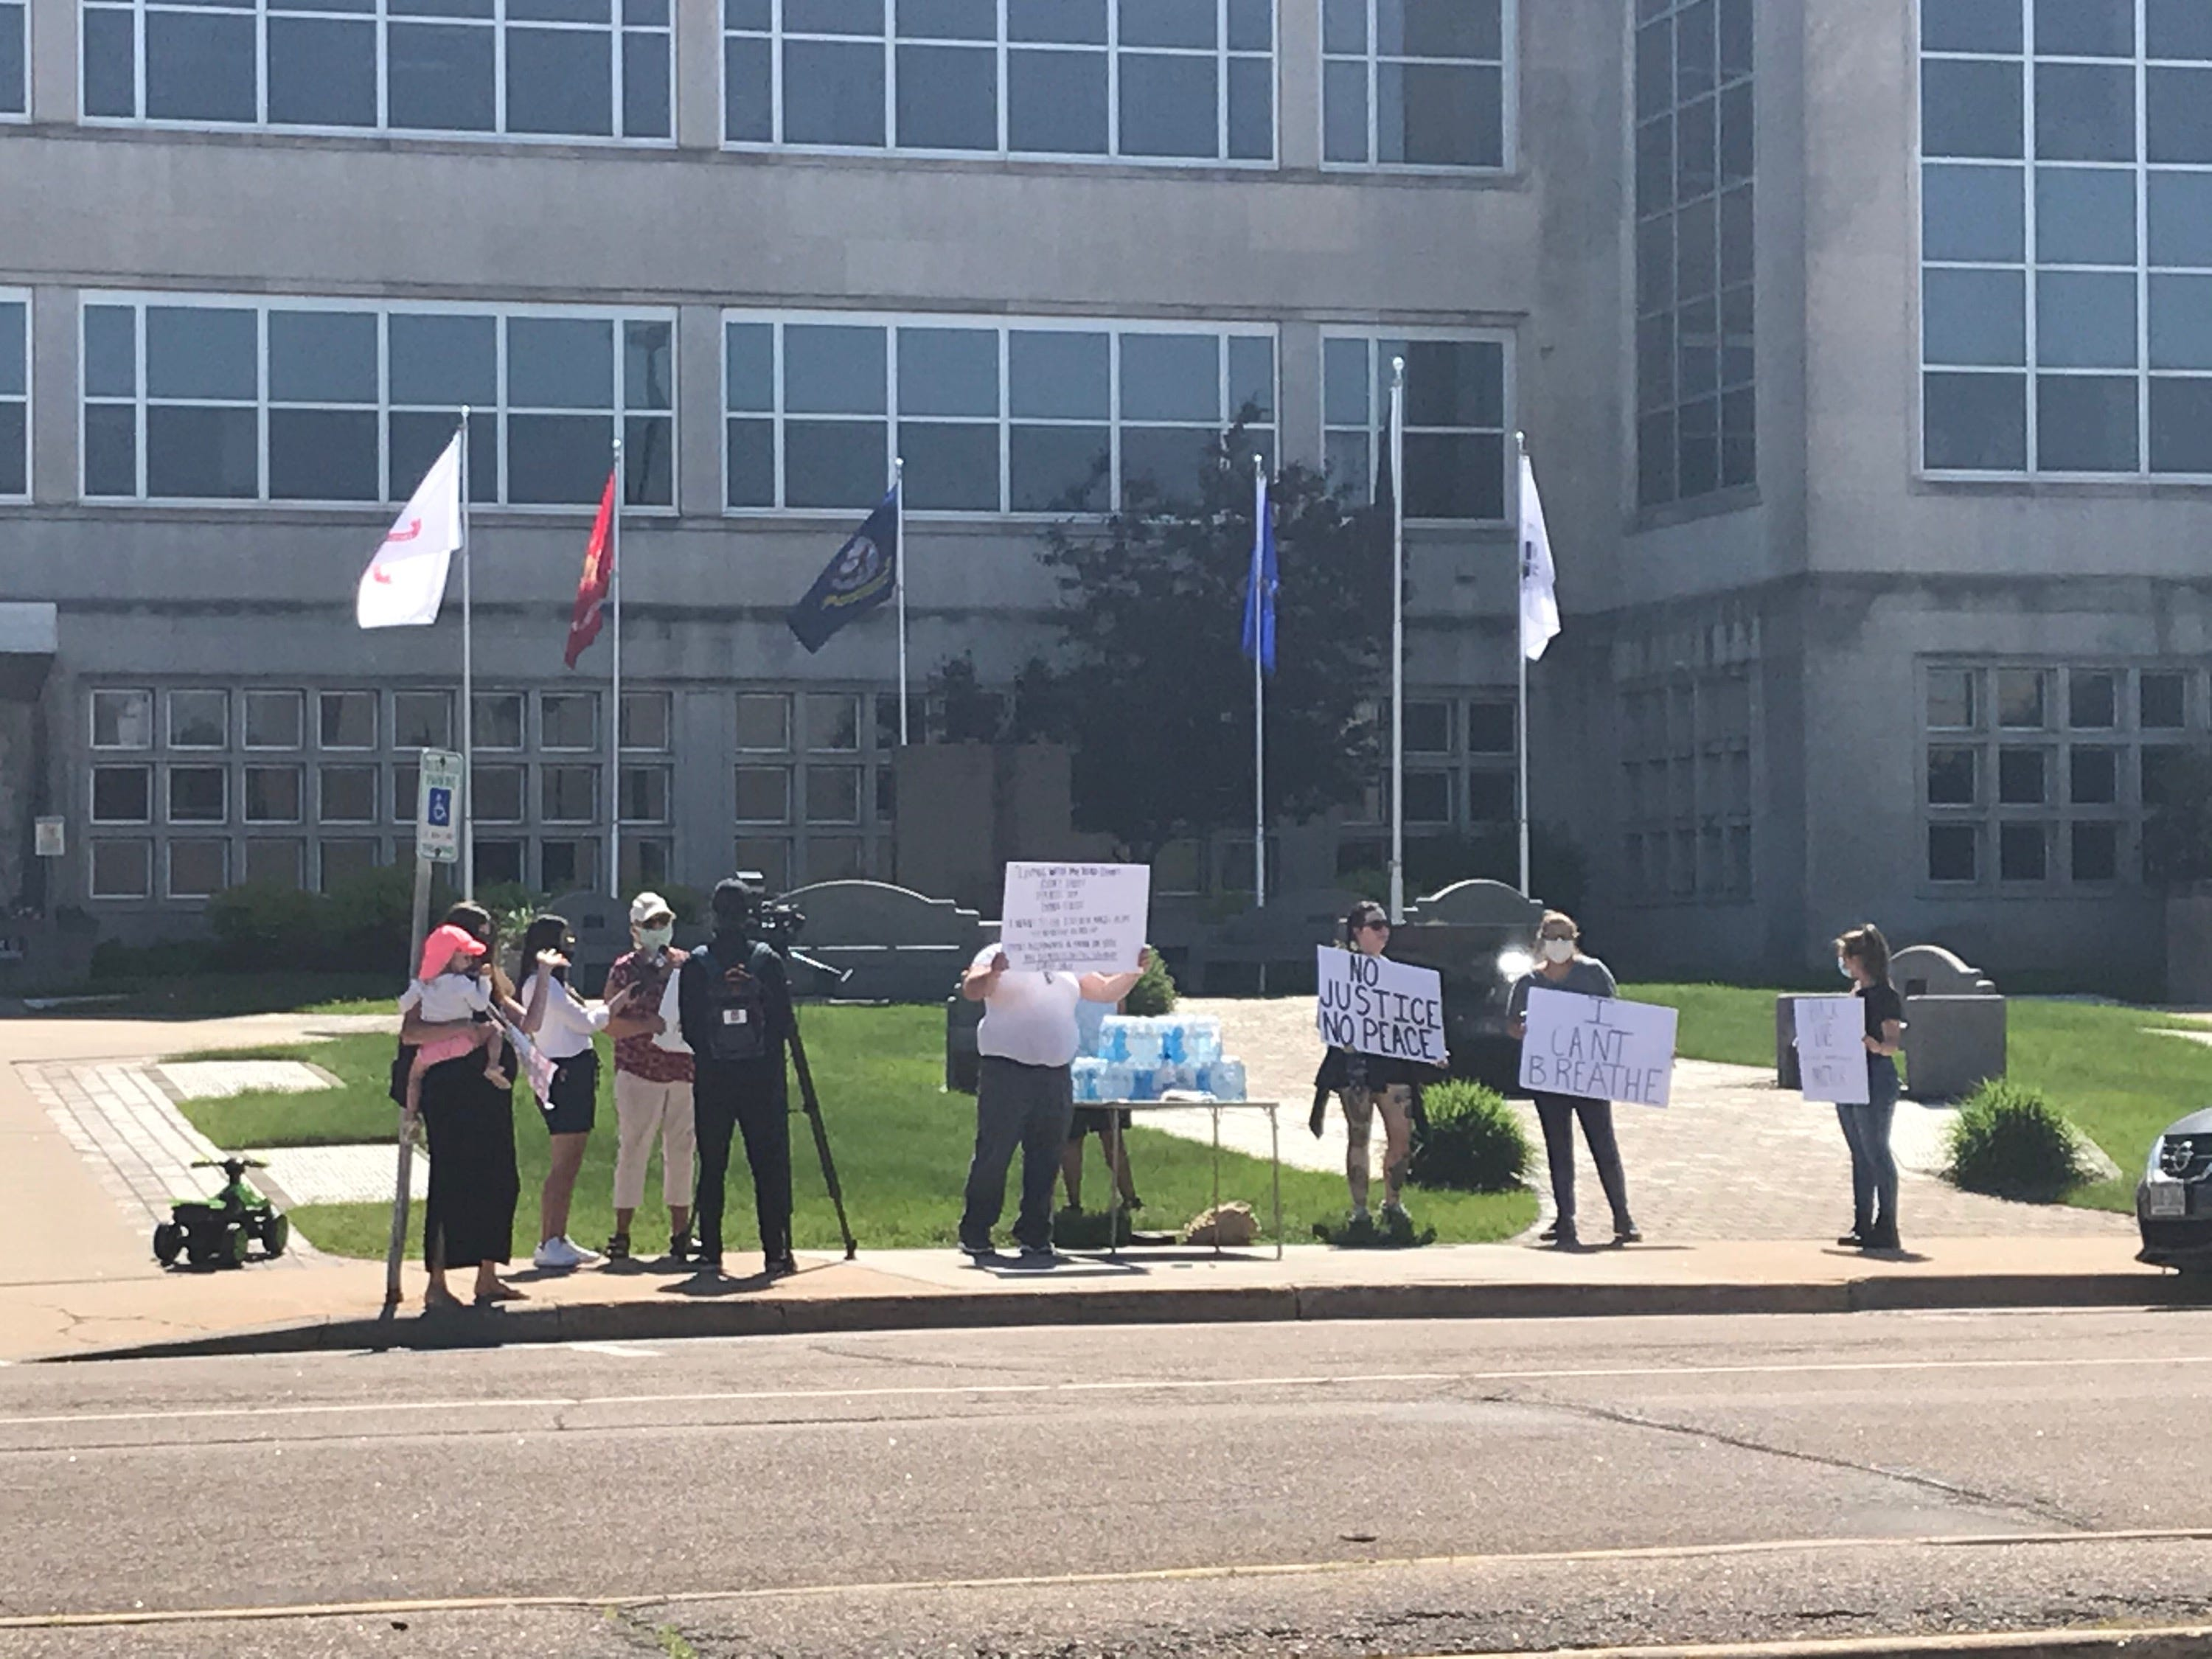 About a dozen people gather in front of the Wood County Courthouse in Wisconsin Rapids Tuesday morning as part of the #JusticeForFloyd Peaceful Protest. The event was scheduled from 10 a.m. to 6 p.m.